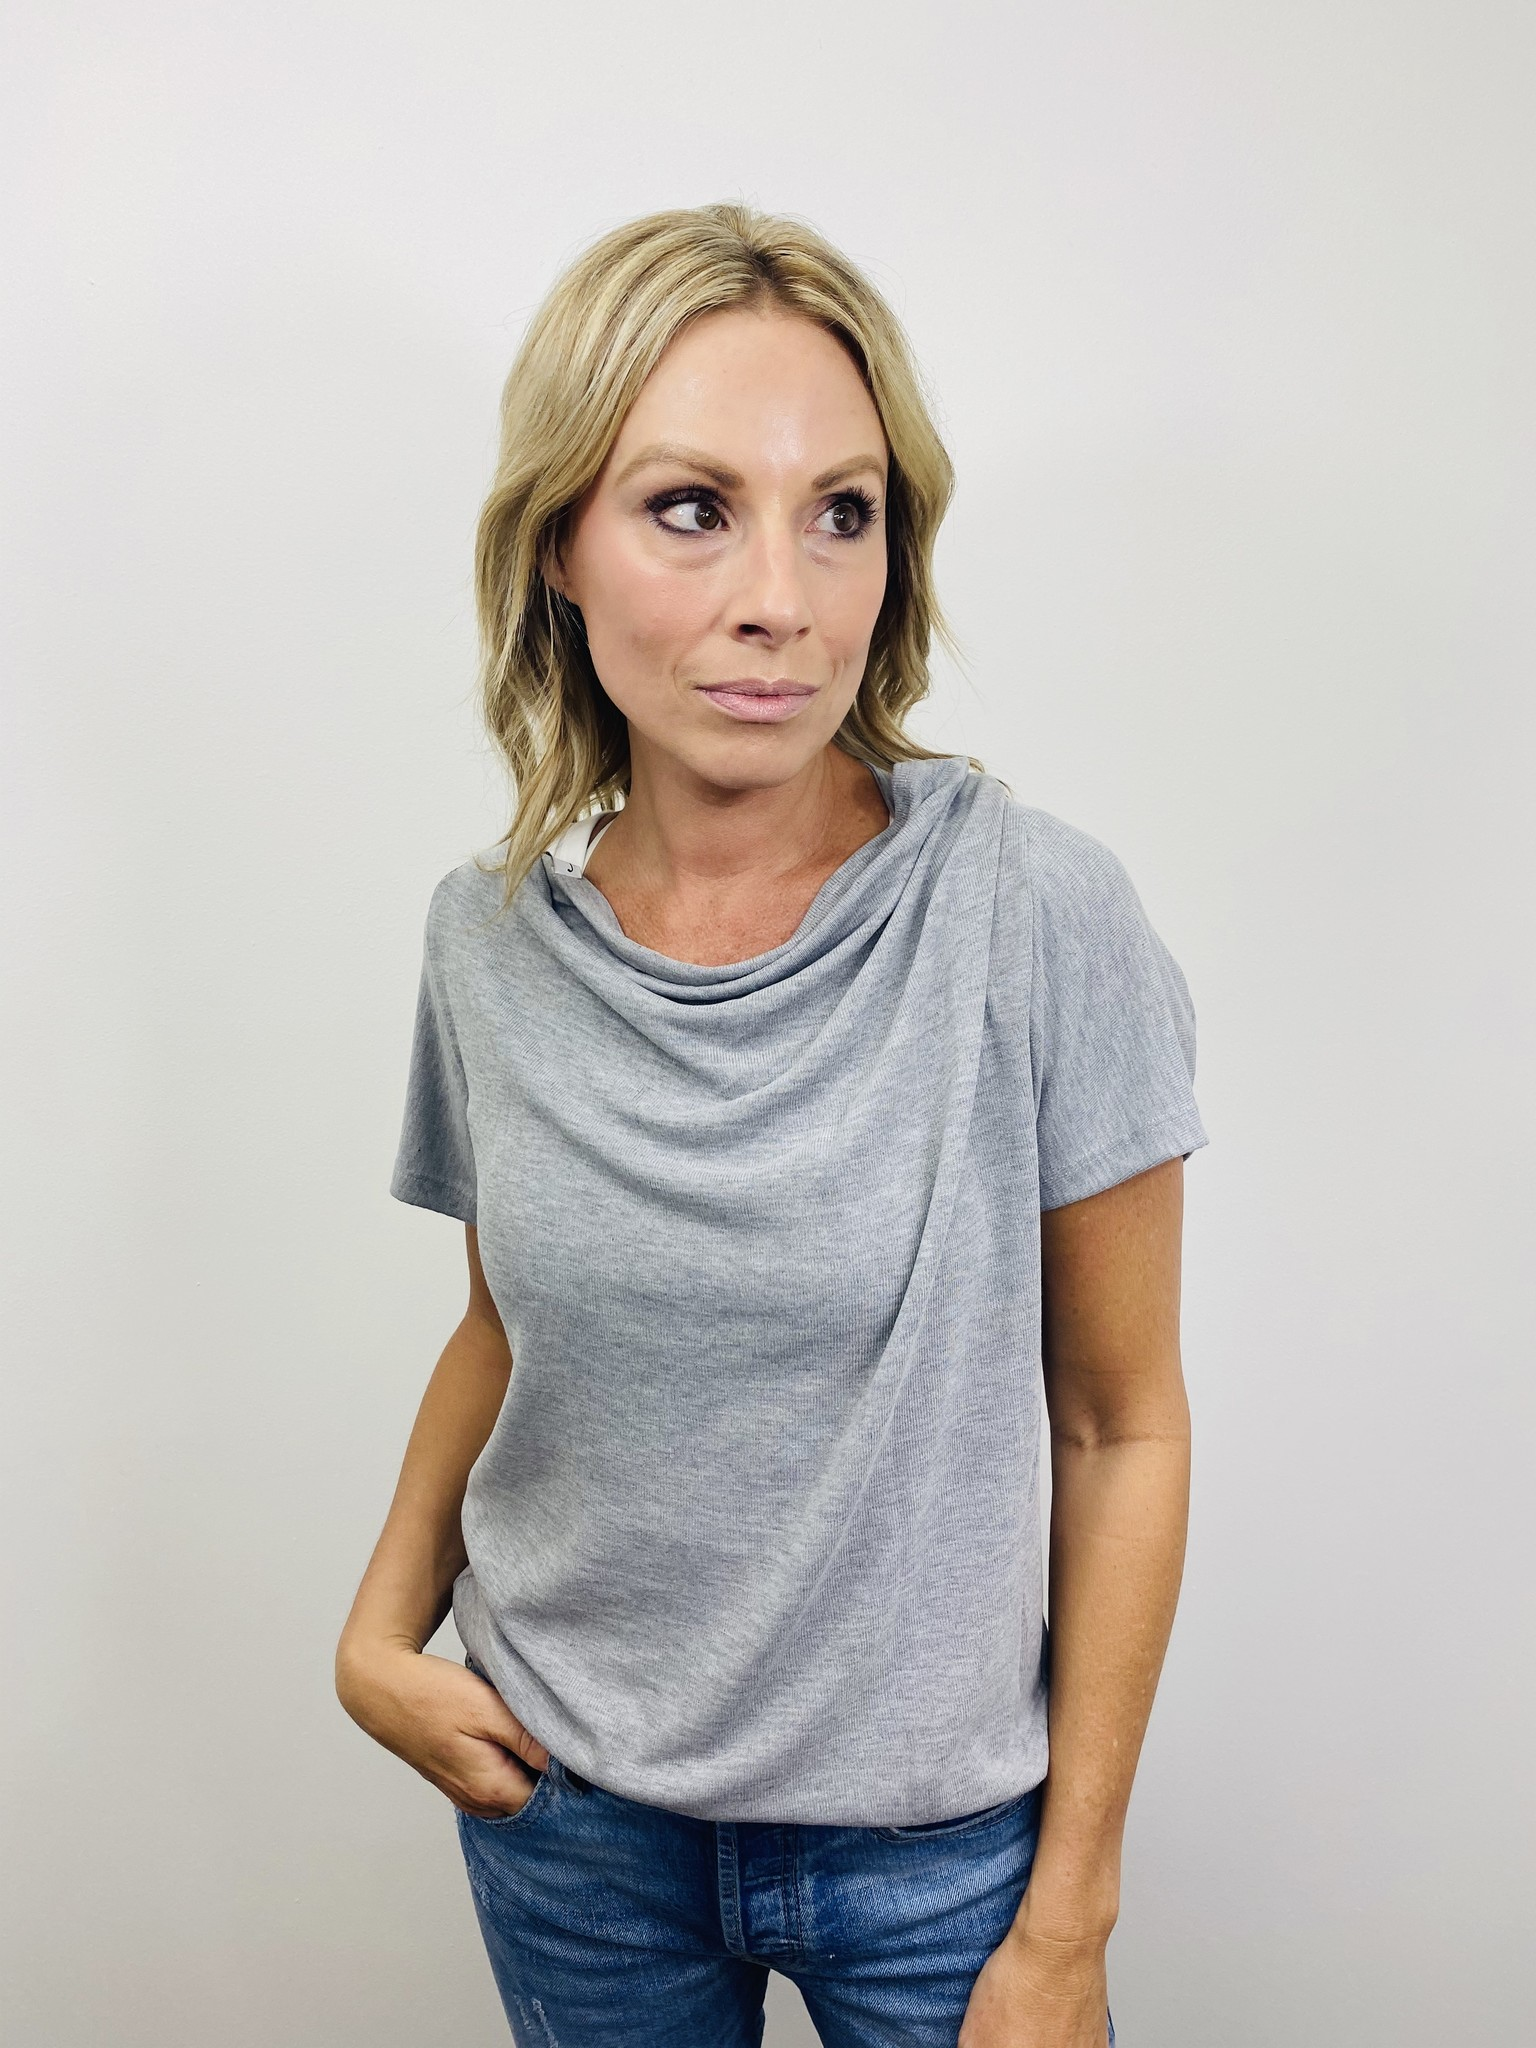 Neesha Cowl Back Top with Strap Detail in Grey